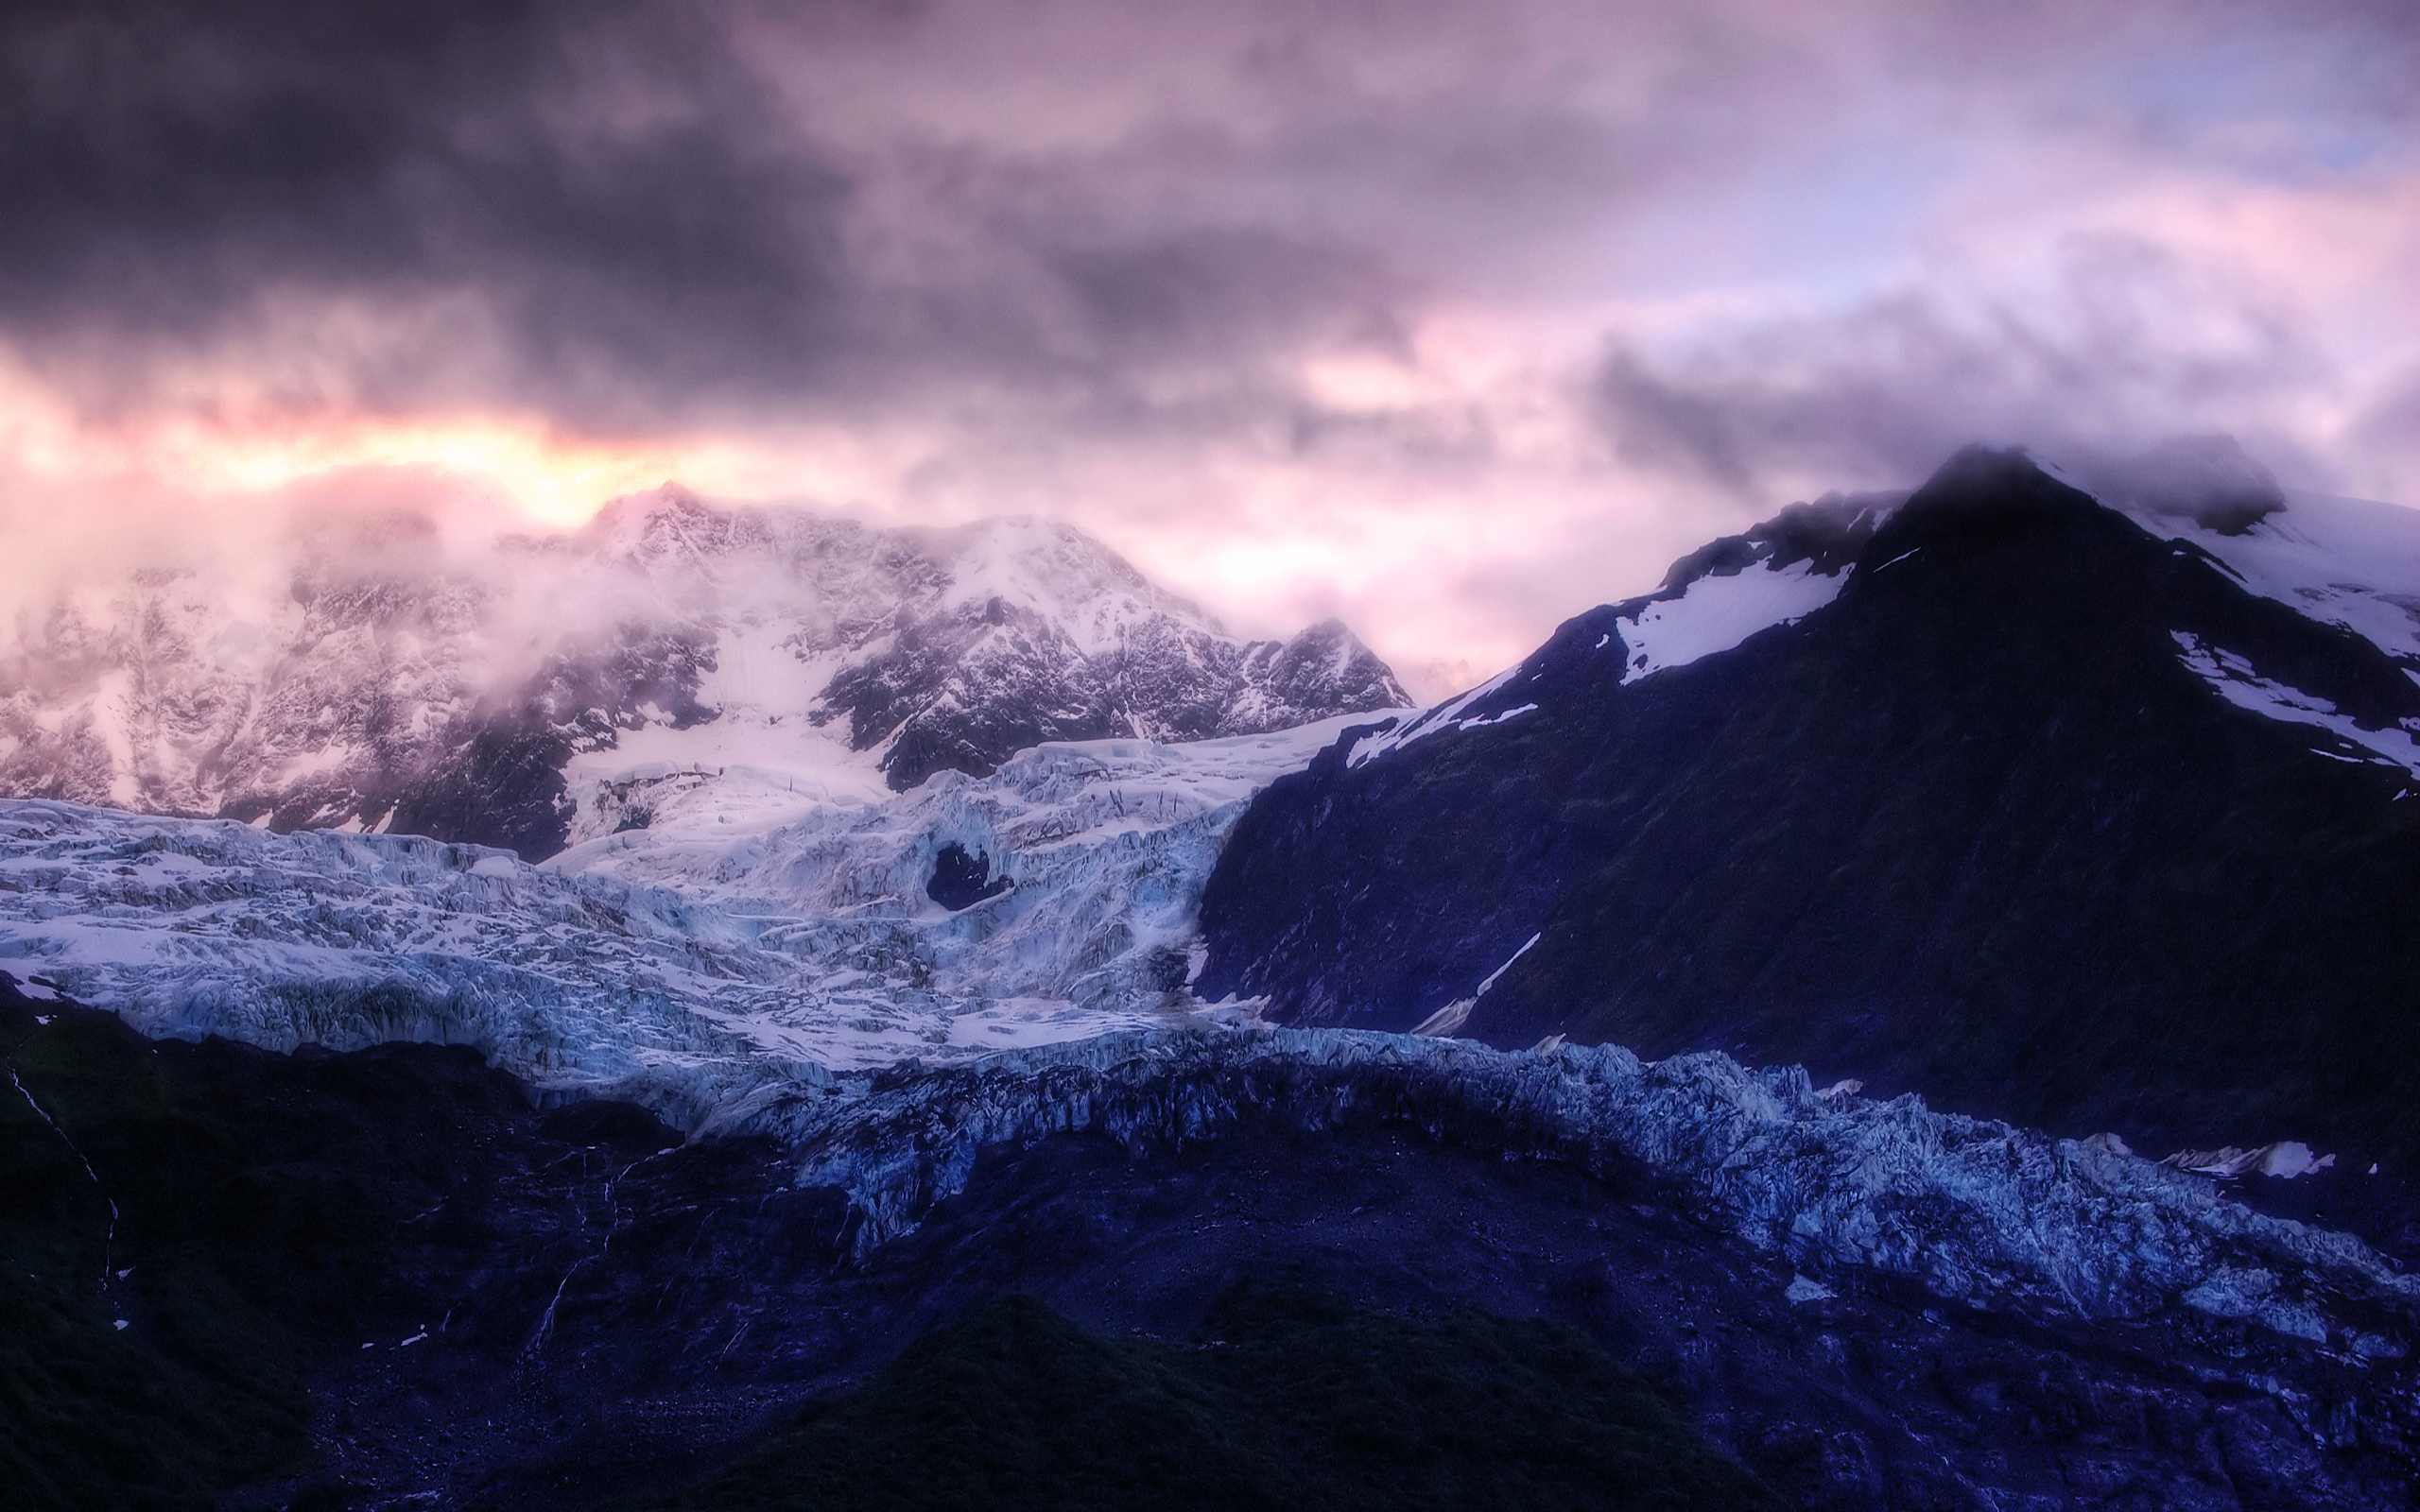 Glacier Sunrise 473.1 Kb